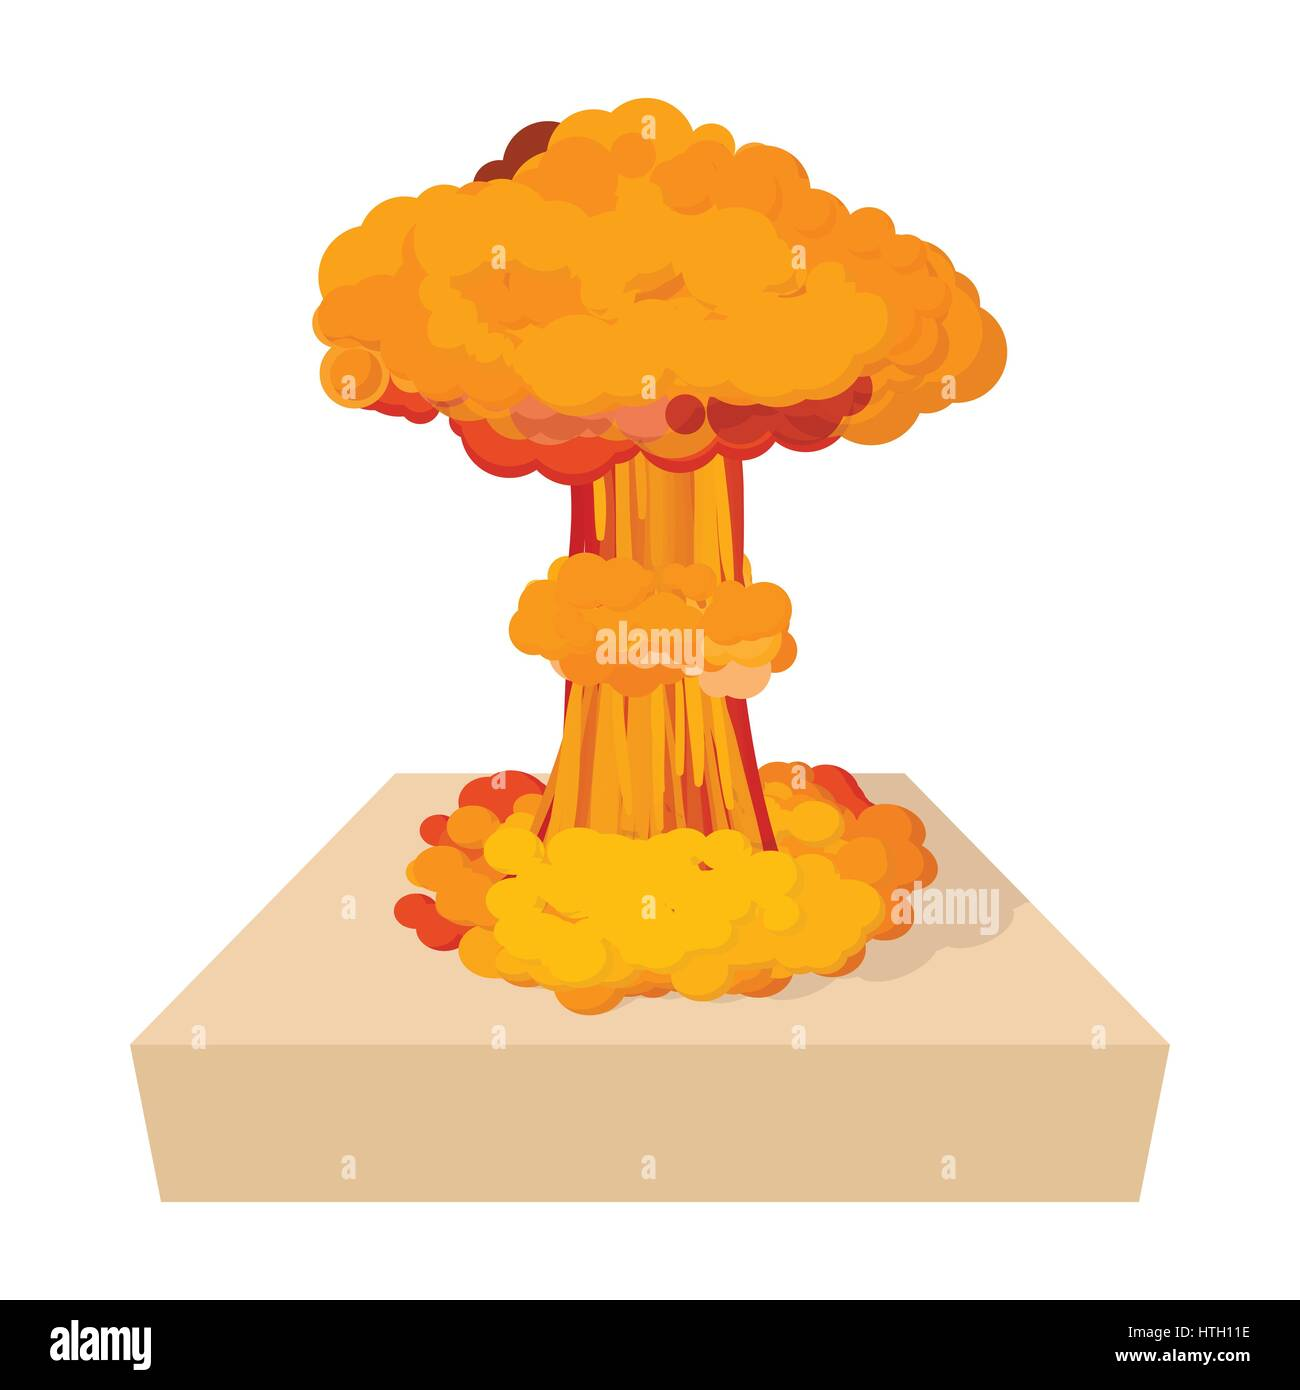 Nuclear explosion icon, cartoon style - Stock Image